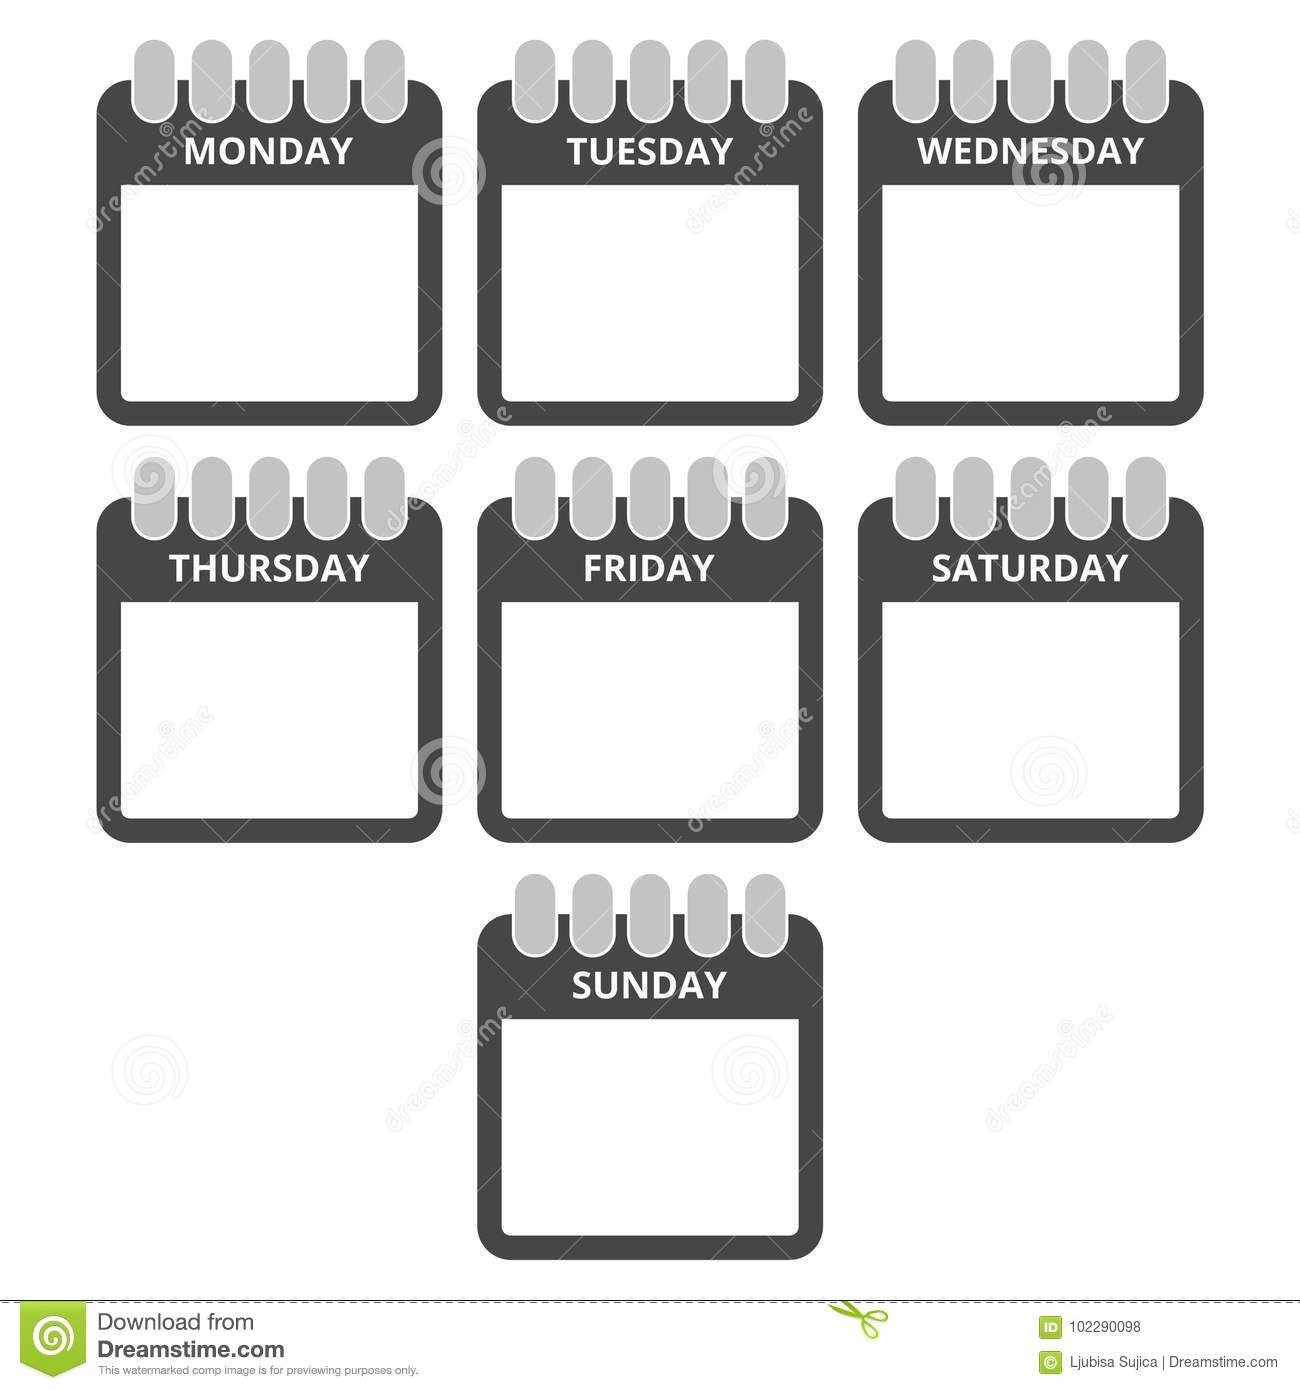 Calendar Days Icon.Days Of The Week Calendar Sheets With The Days Of The Week Stock